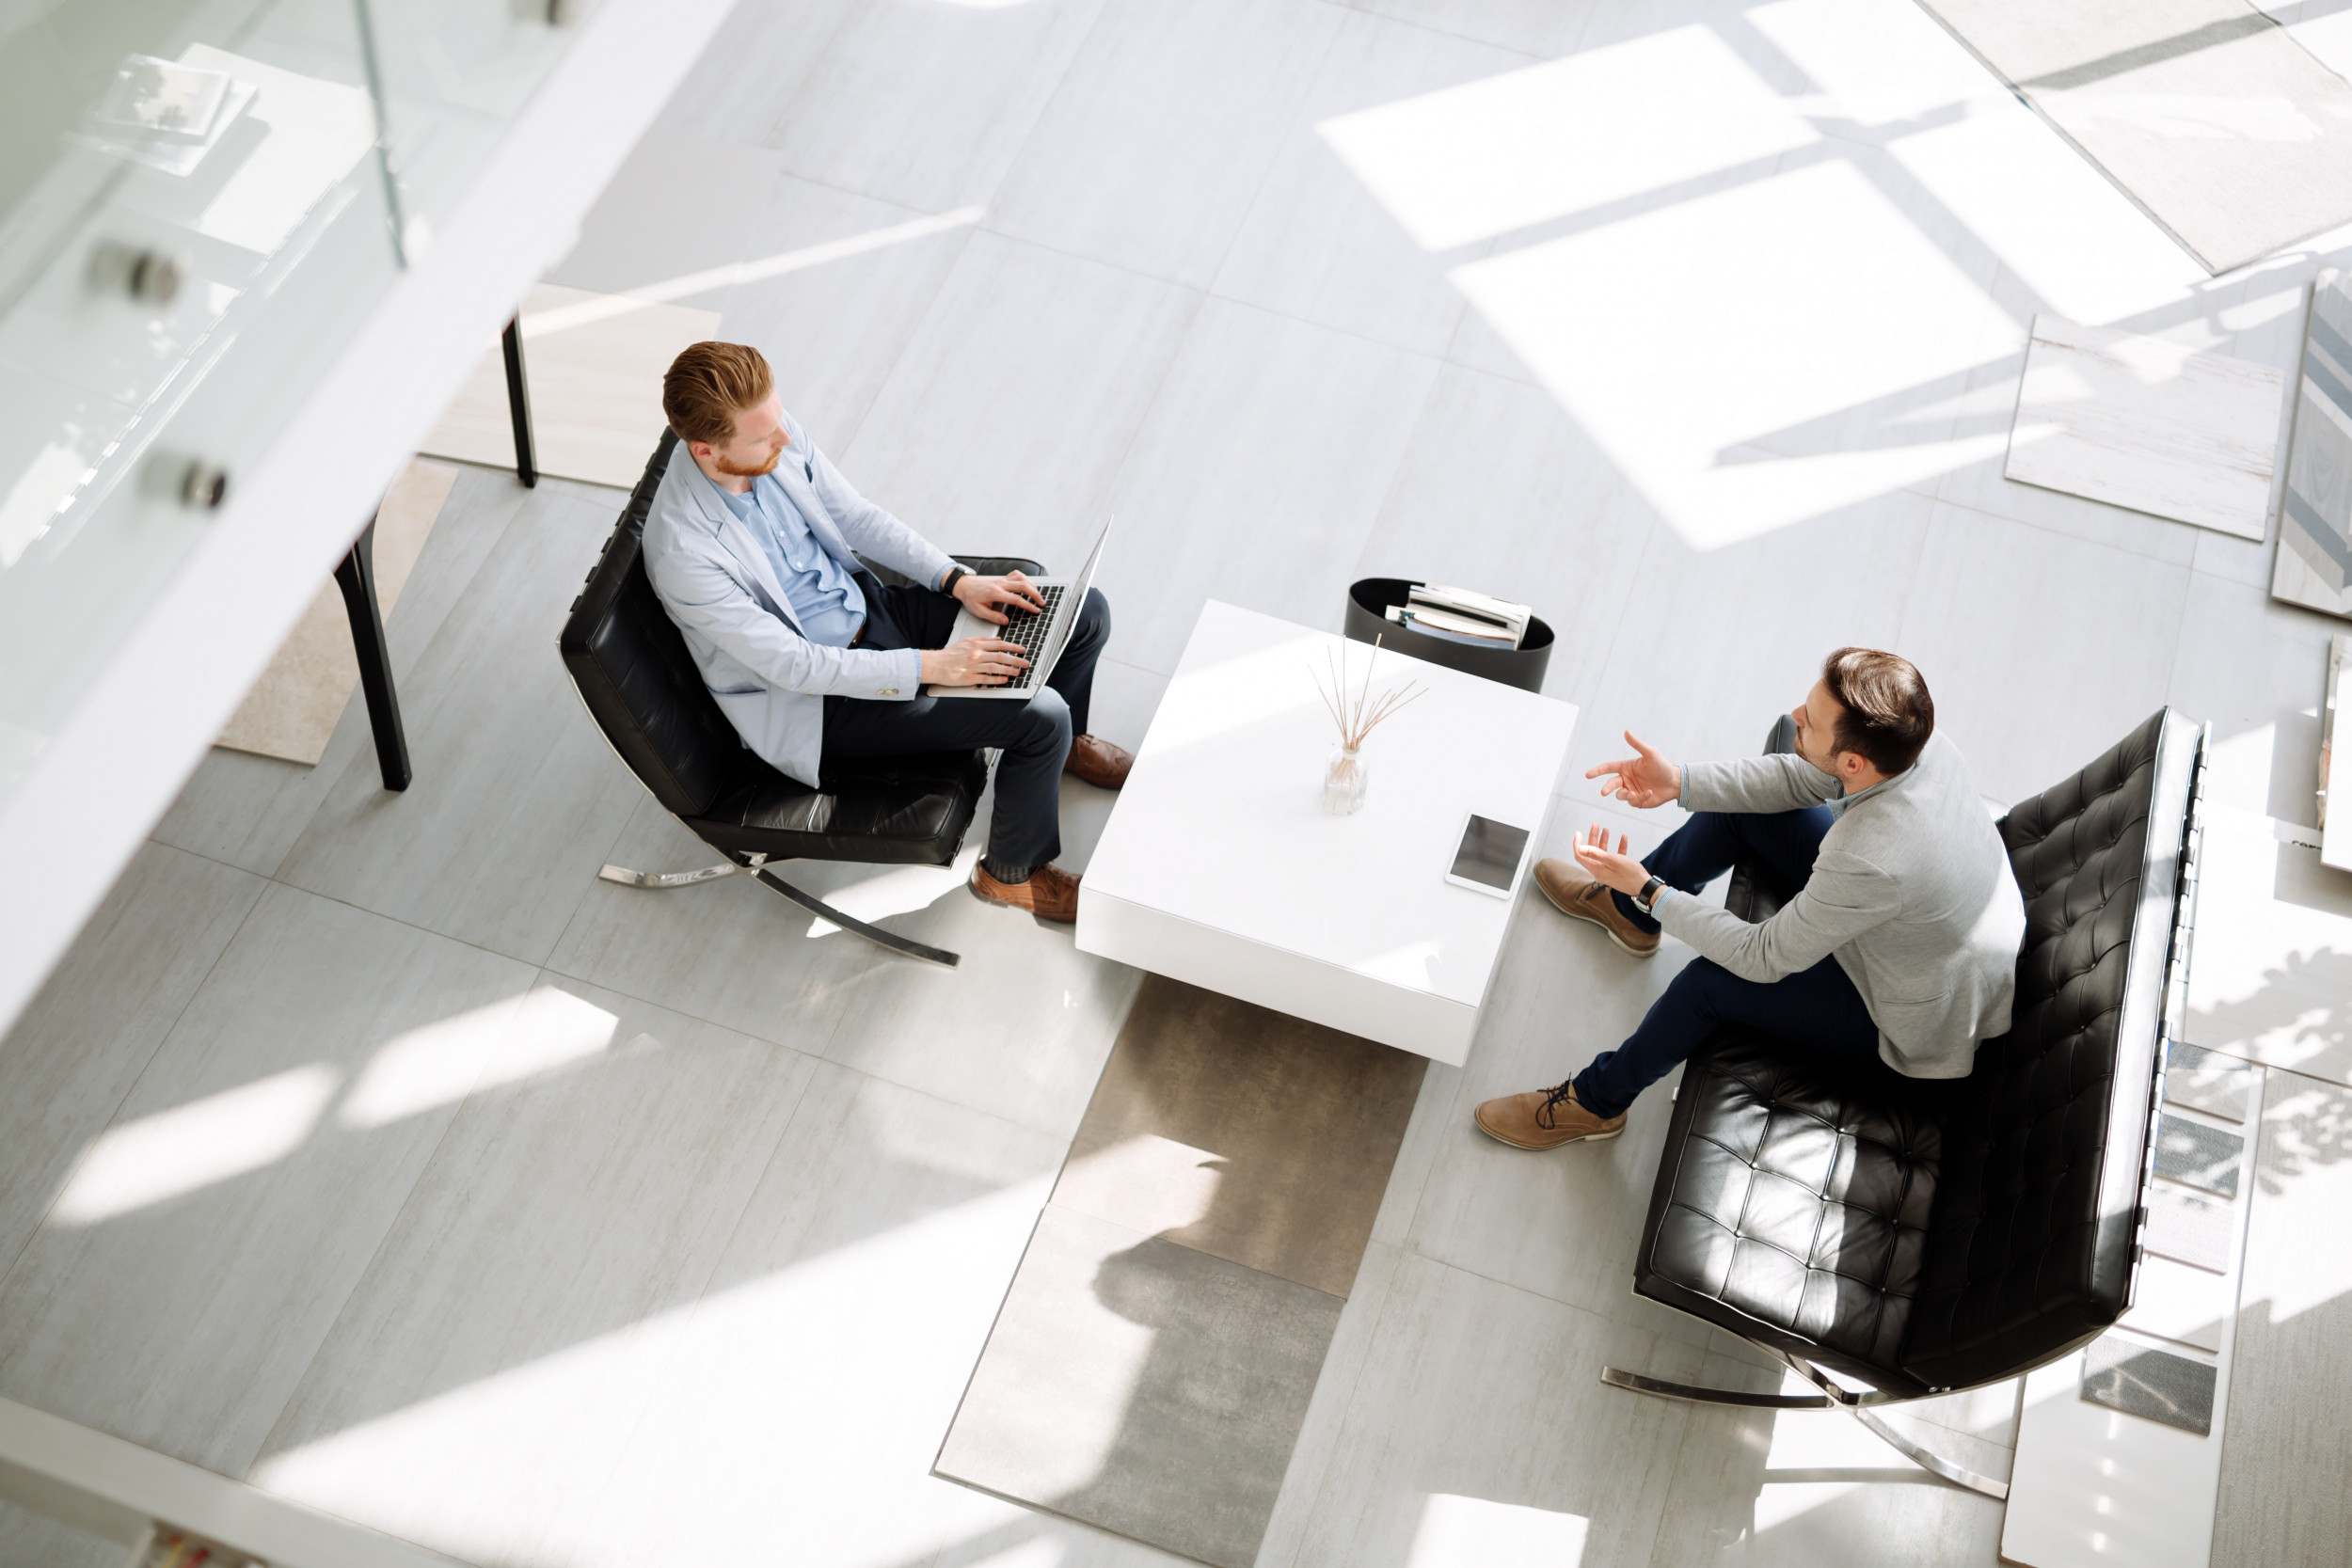 Business people discussing ideas